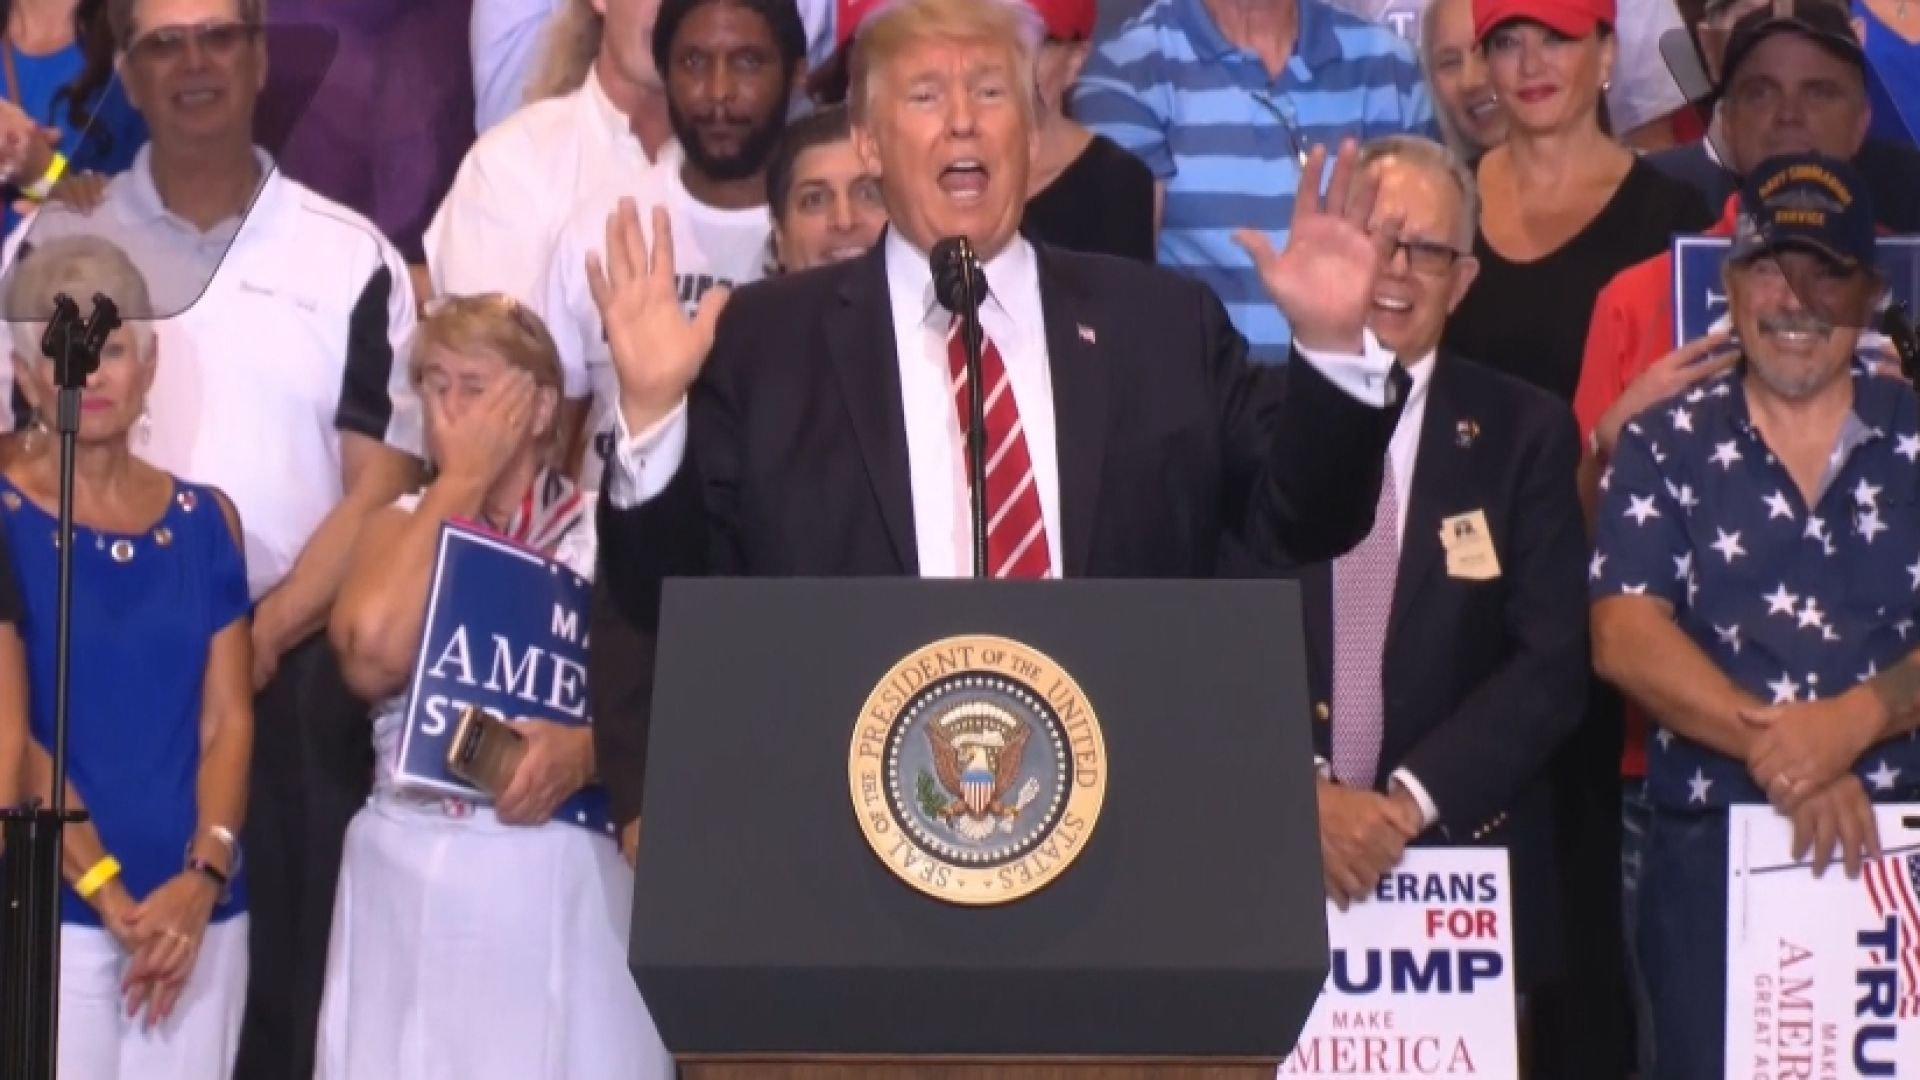 Trump lashes out at press during Arizona rally